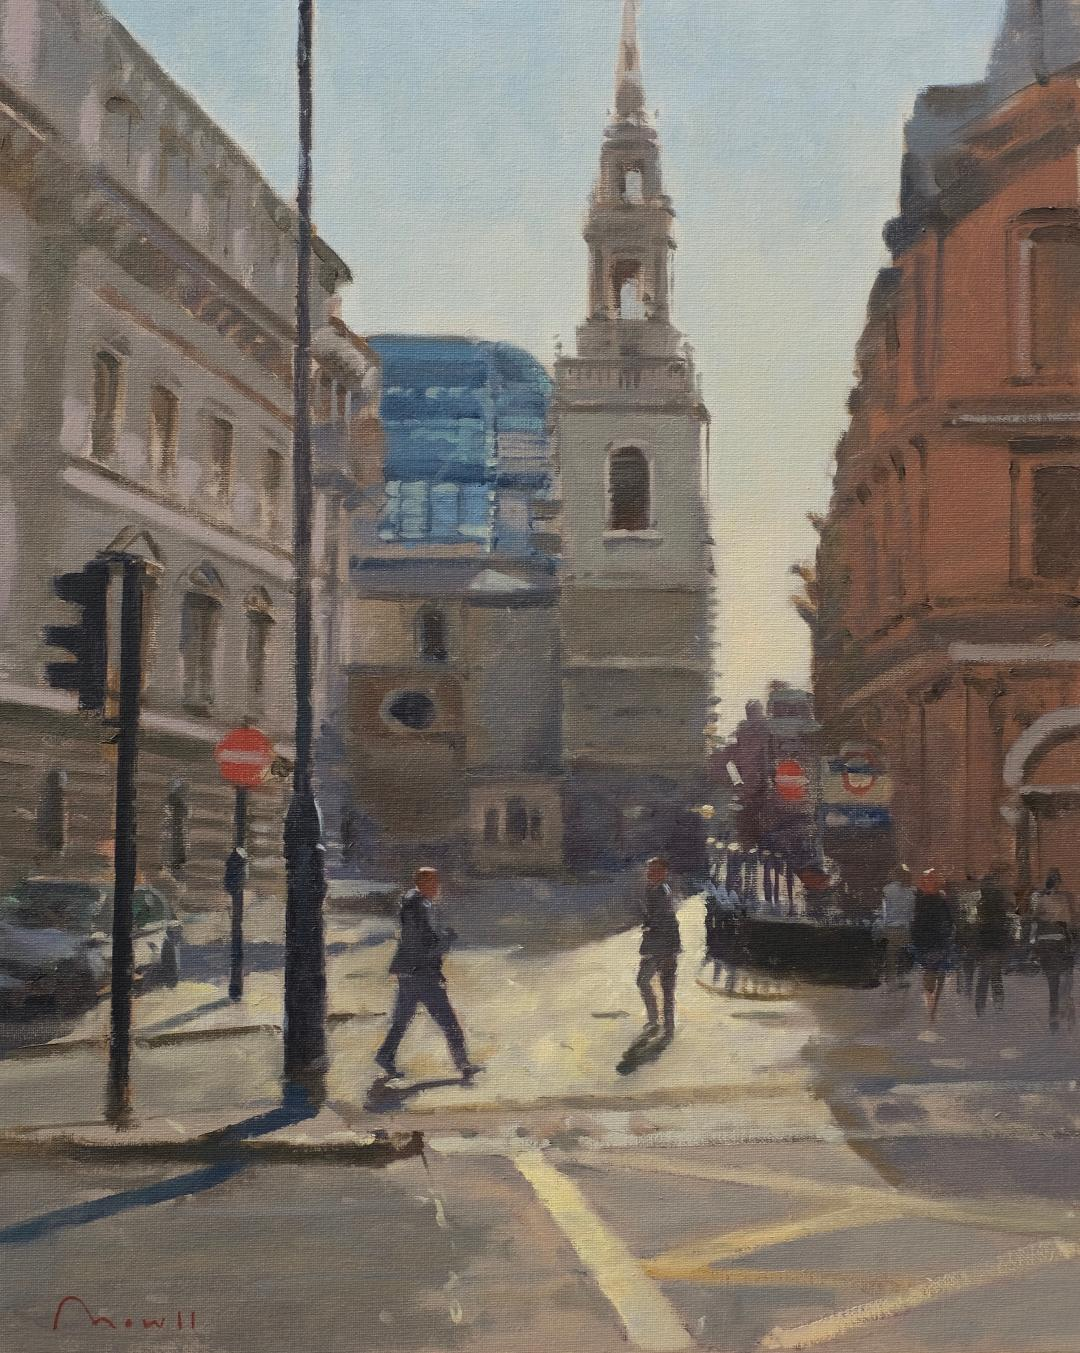 Summer in the City, Towards St. Stephen's Walbrook - Reference: BM/0519/916x20